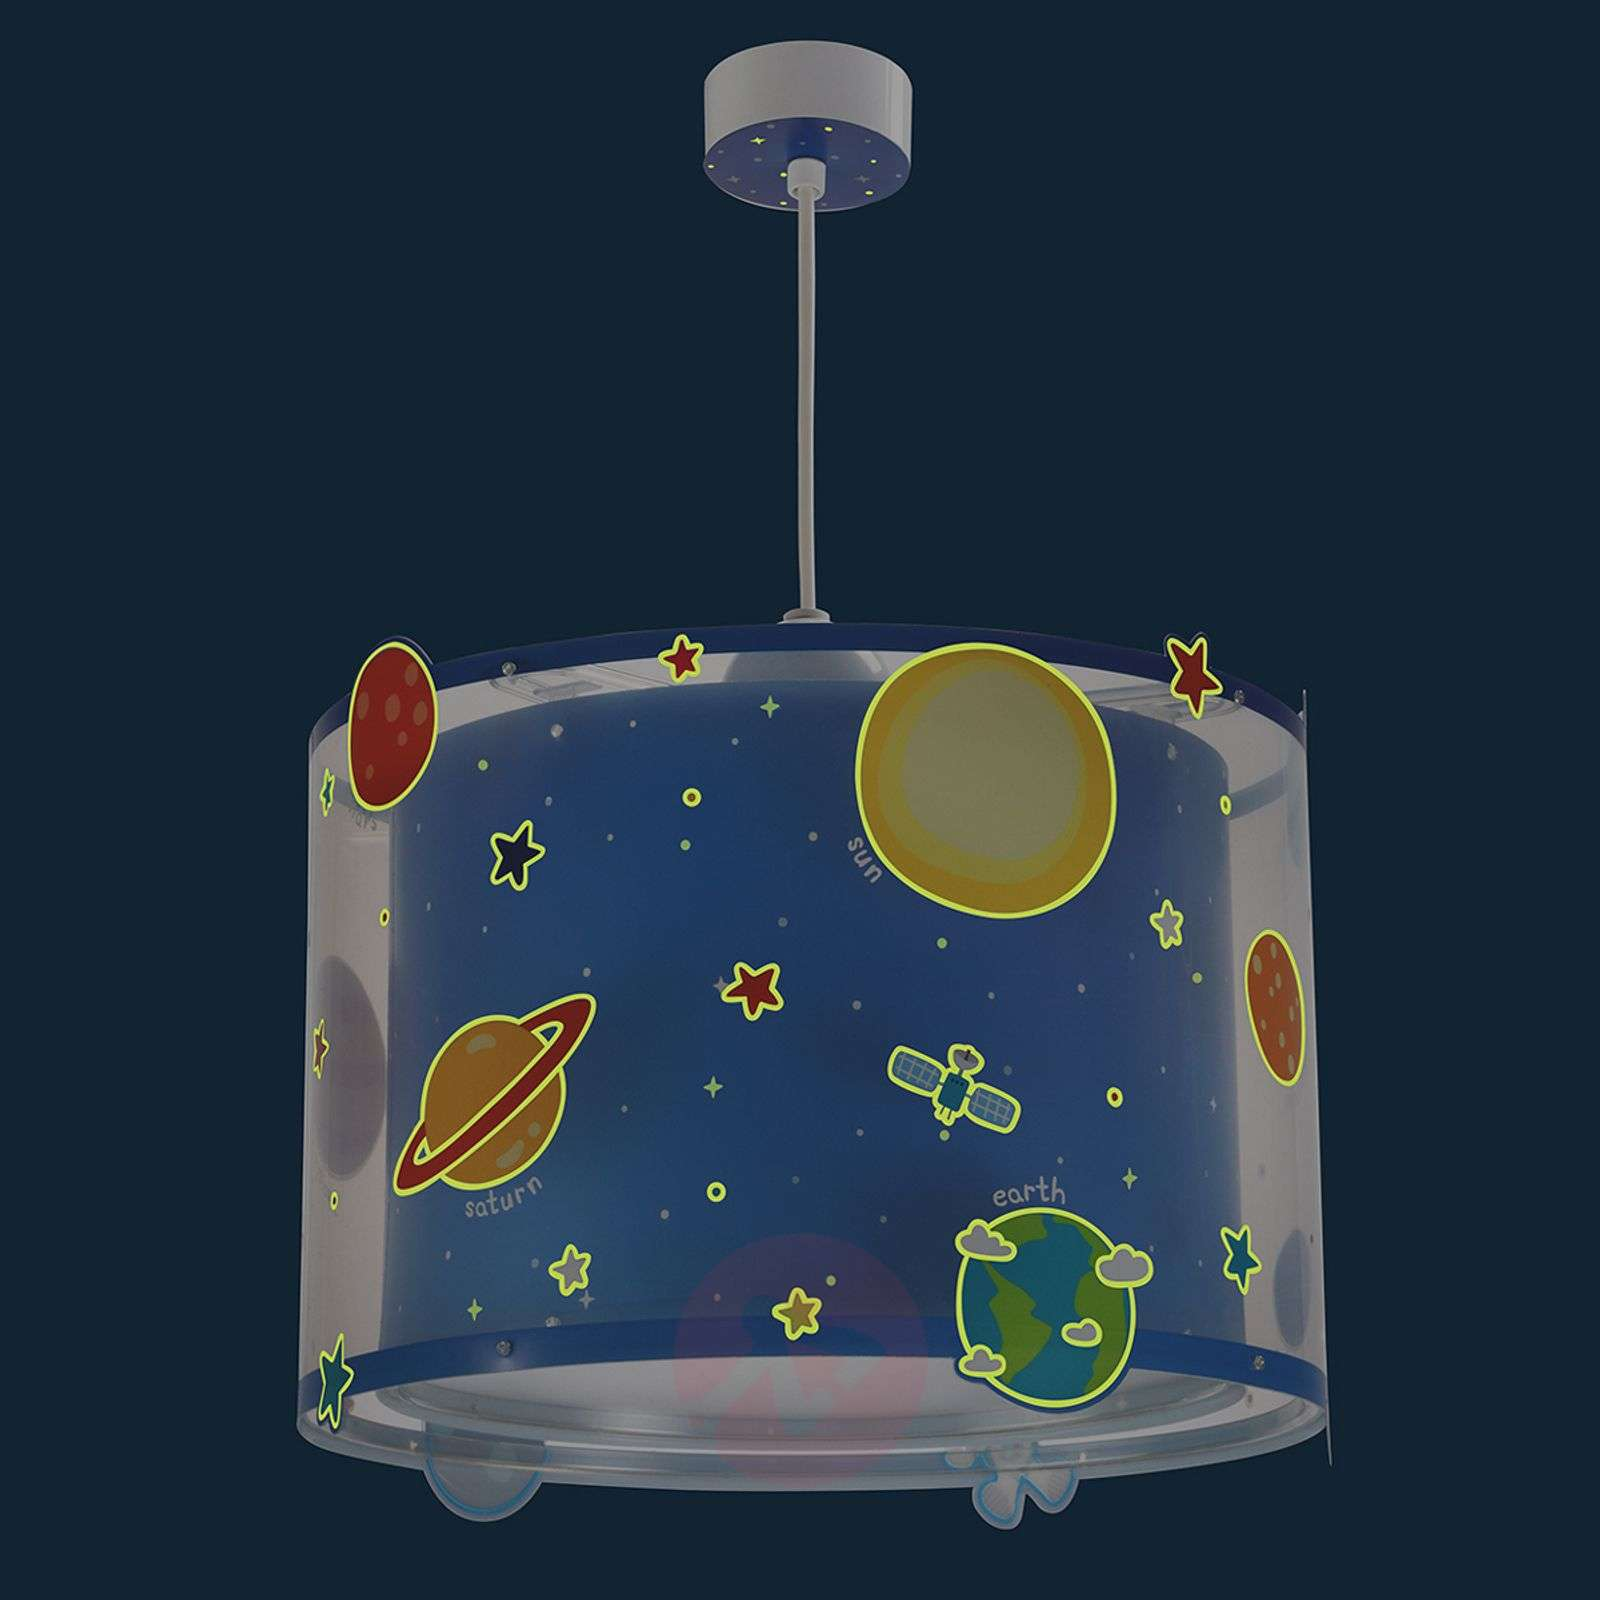 Planets childrens pendant light with motif-2507369-01